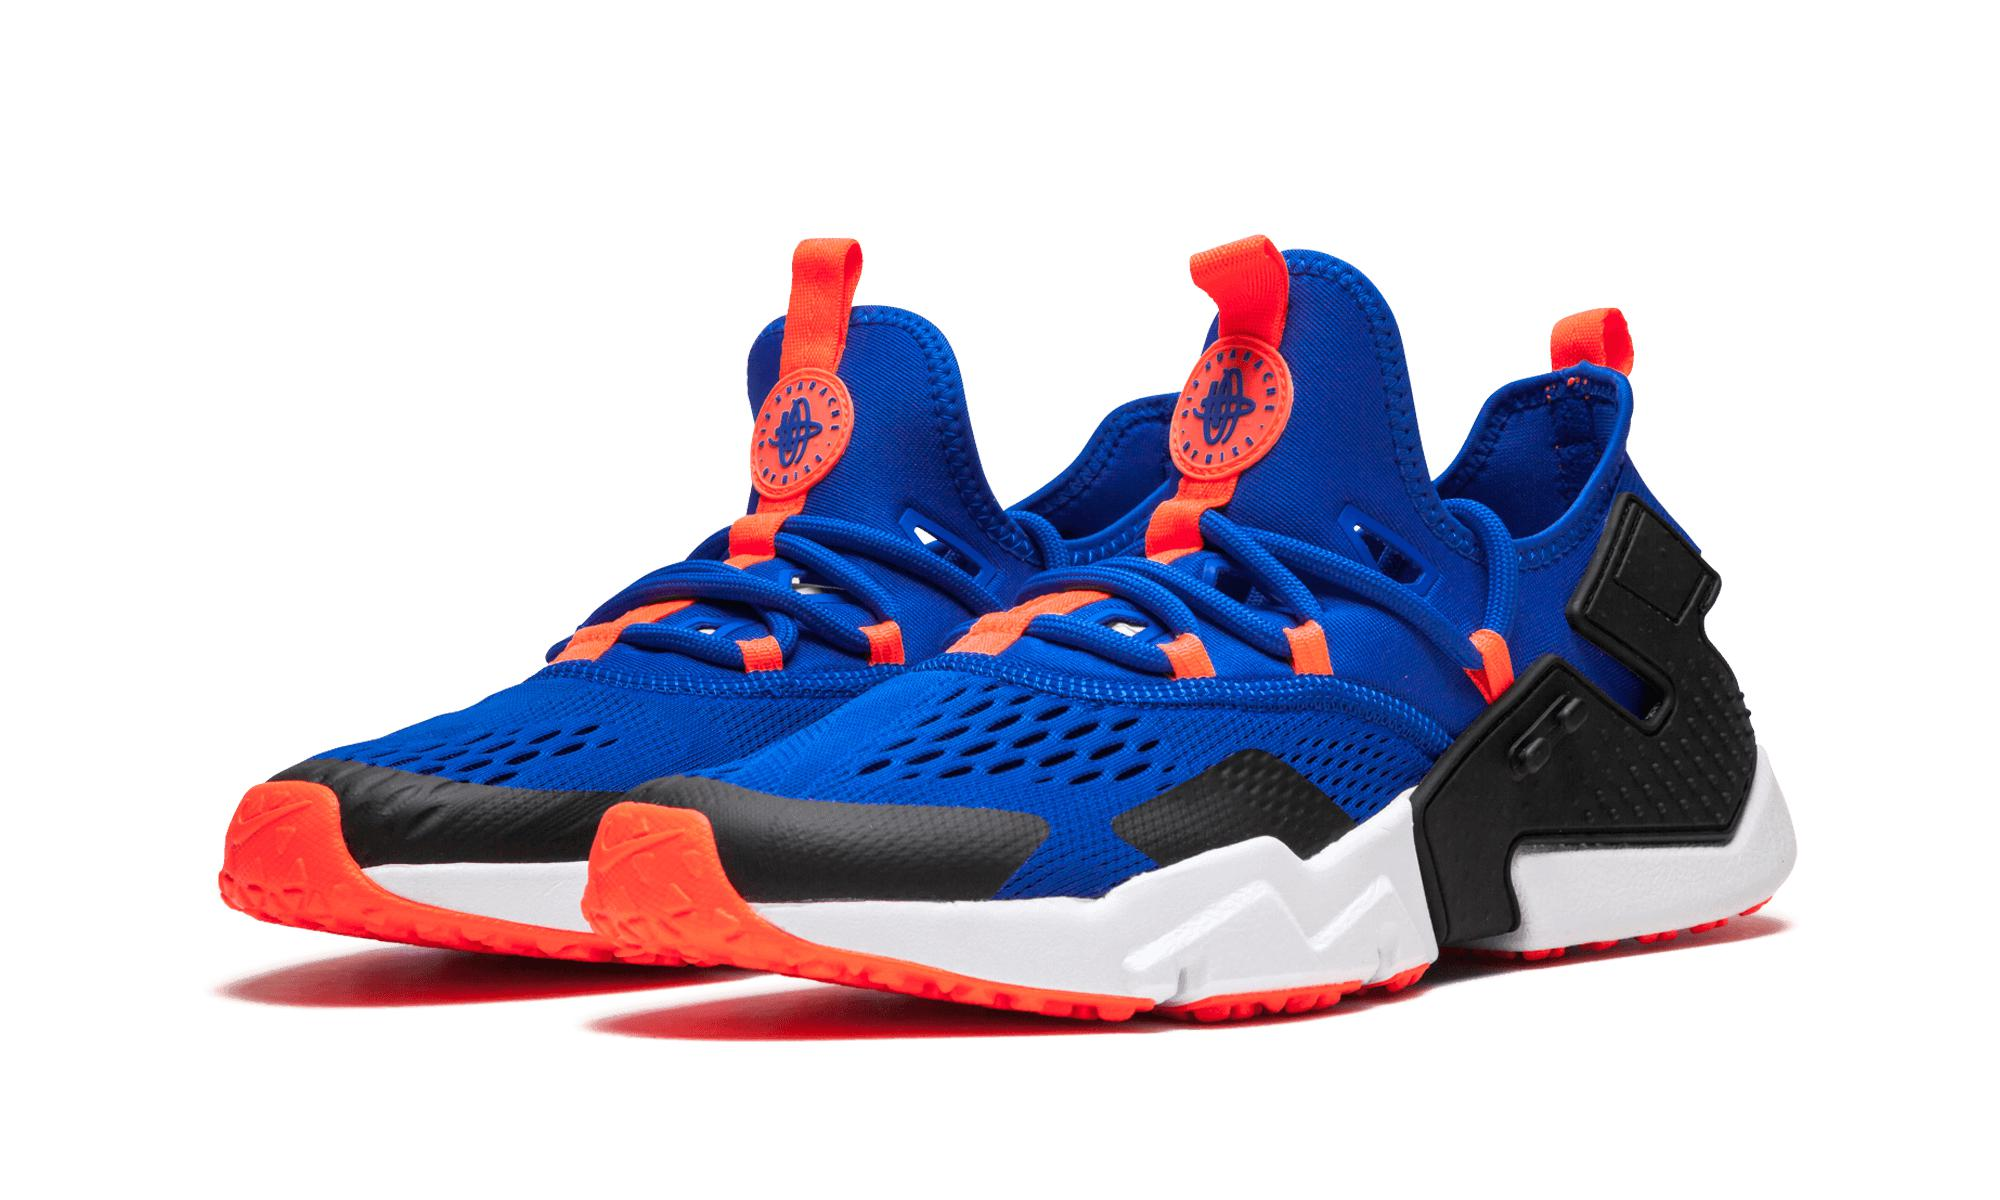 38f6ddc741da1 ... closeout lyst nike air huarache drift br in blue for men f4f06 6aea5